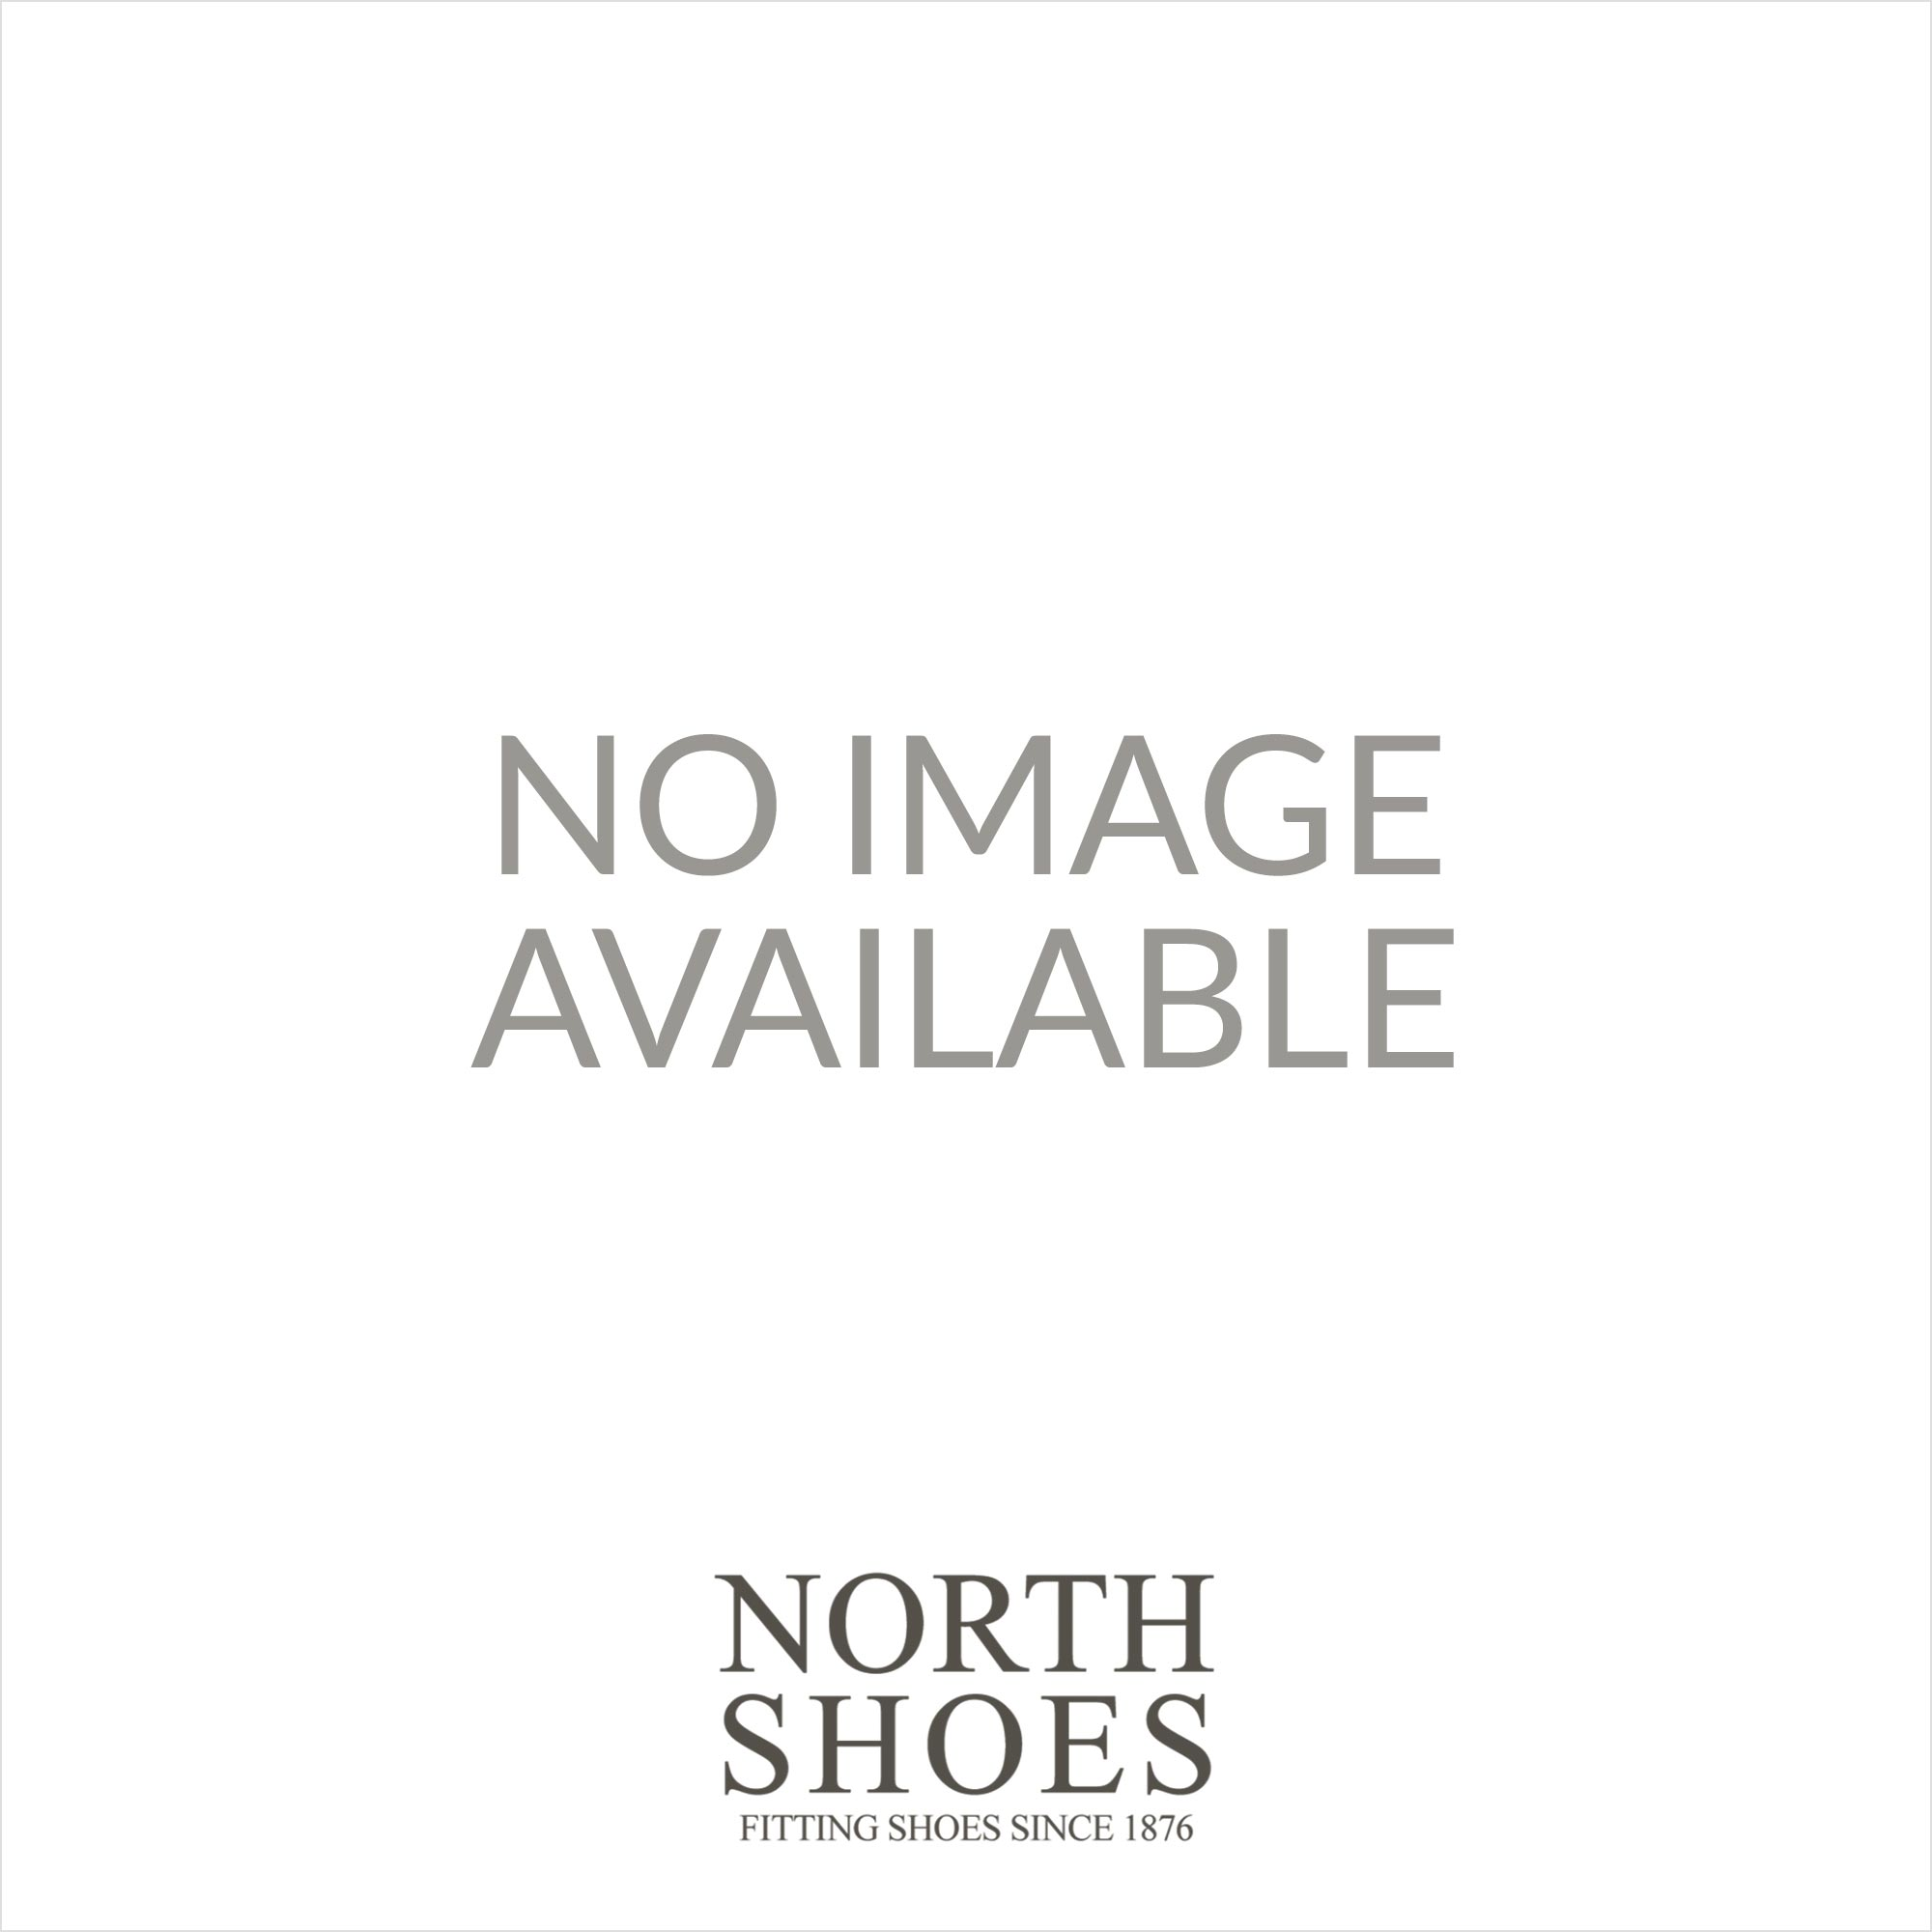 aae5432d023 Clarks Sarla Cadence Tan Perforated Leather Womens Open Toe Sandal - Clarks  from North Shoes UK